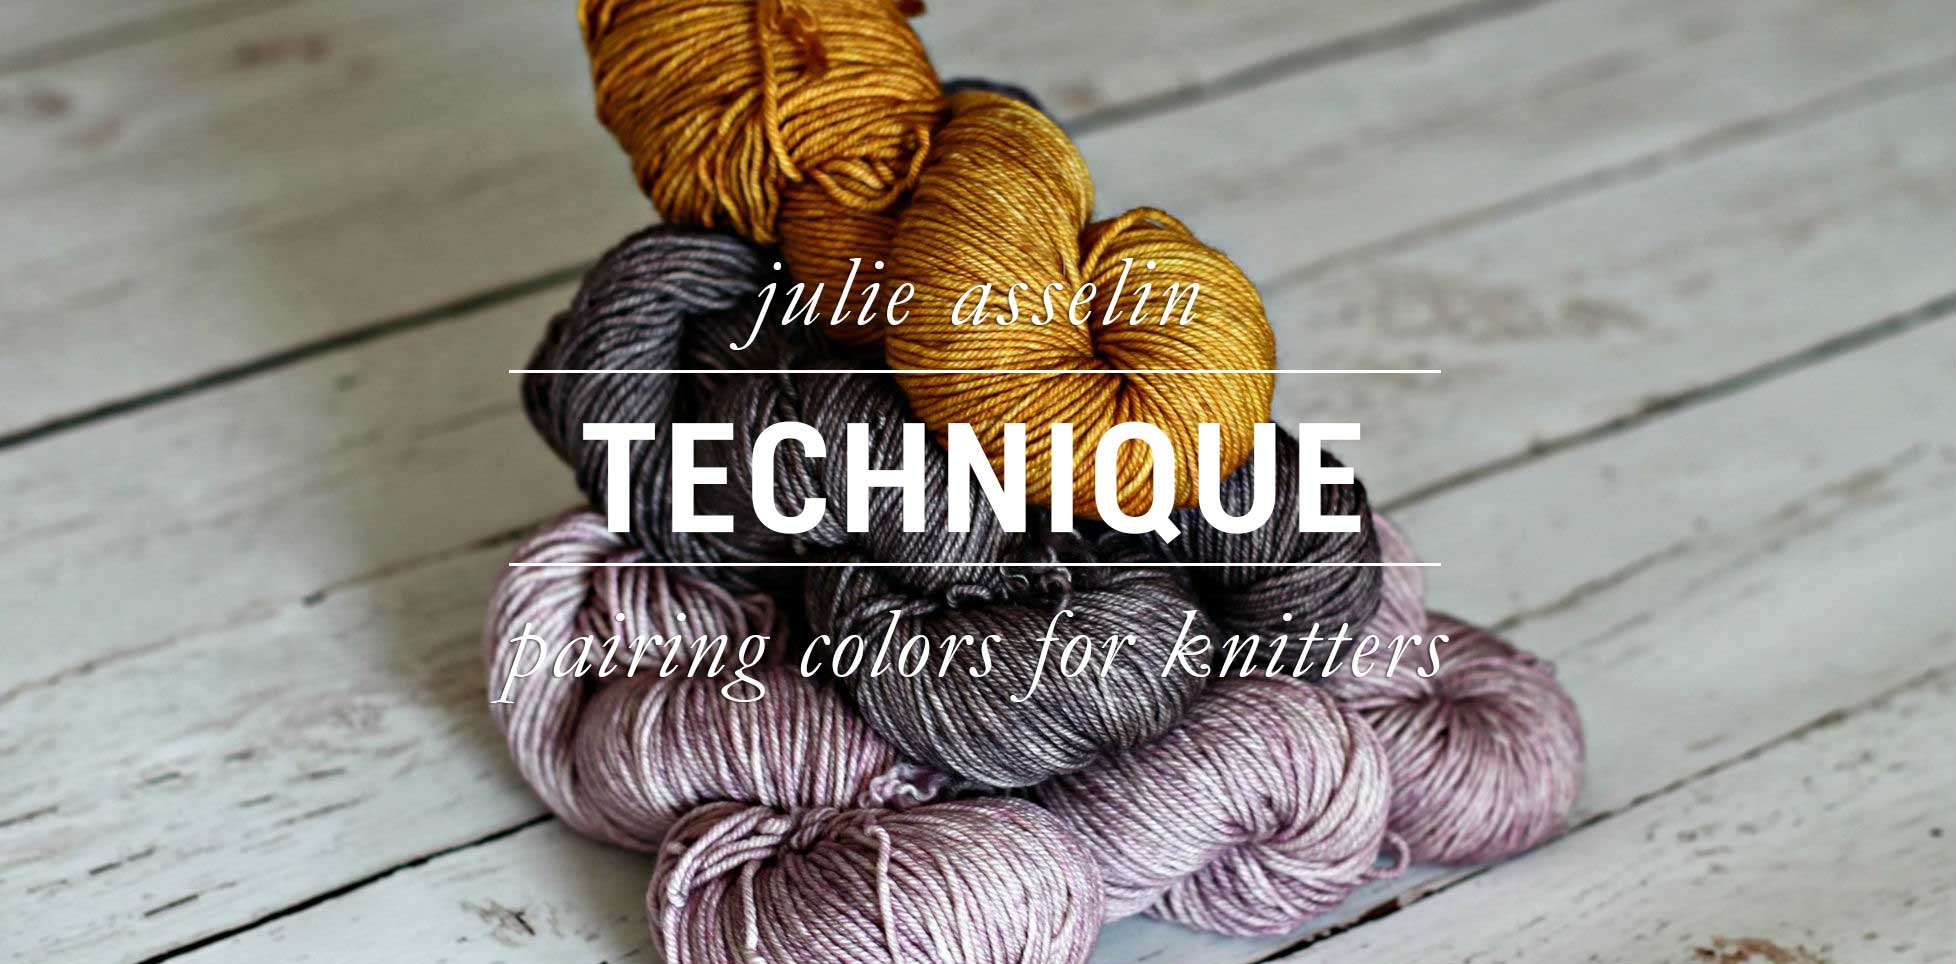 pairing colors for knitters.jpg